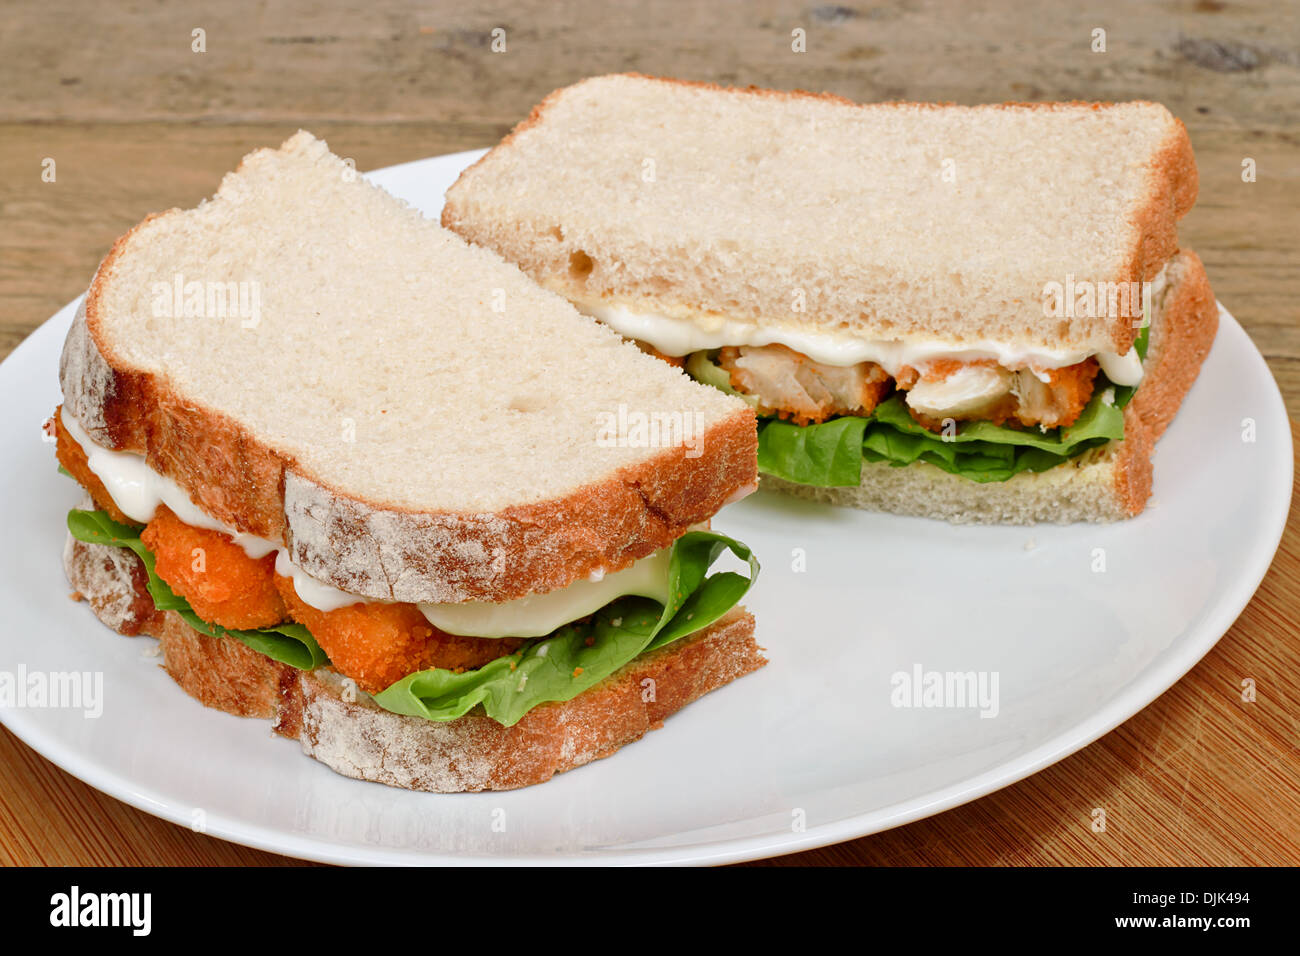 Fresh Fish Finger Sandwich on a white serving plate - Stock Image